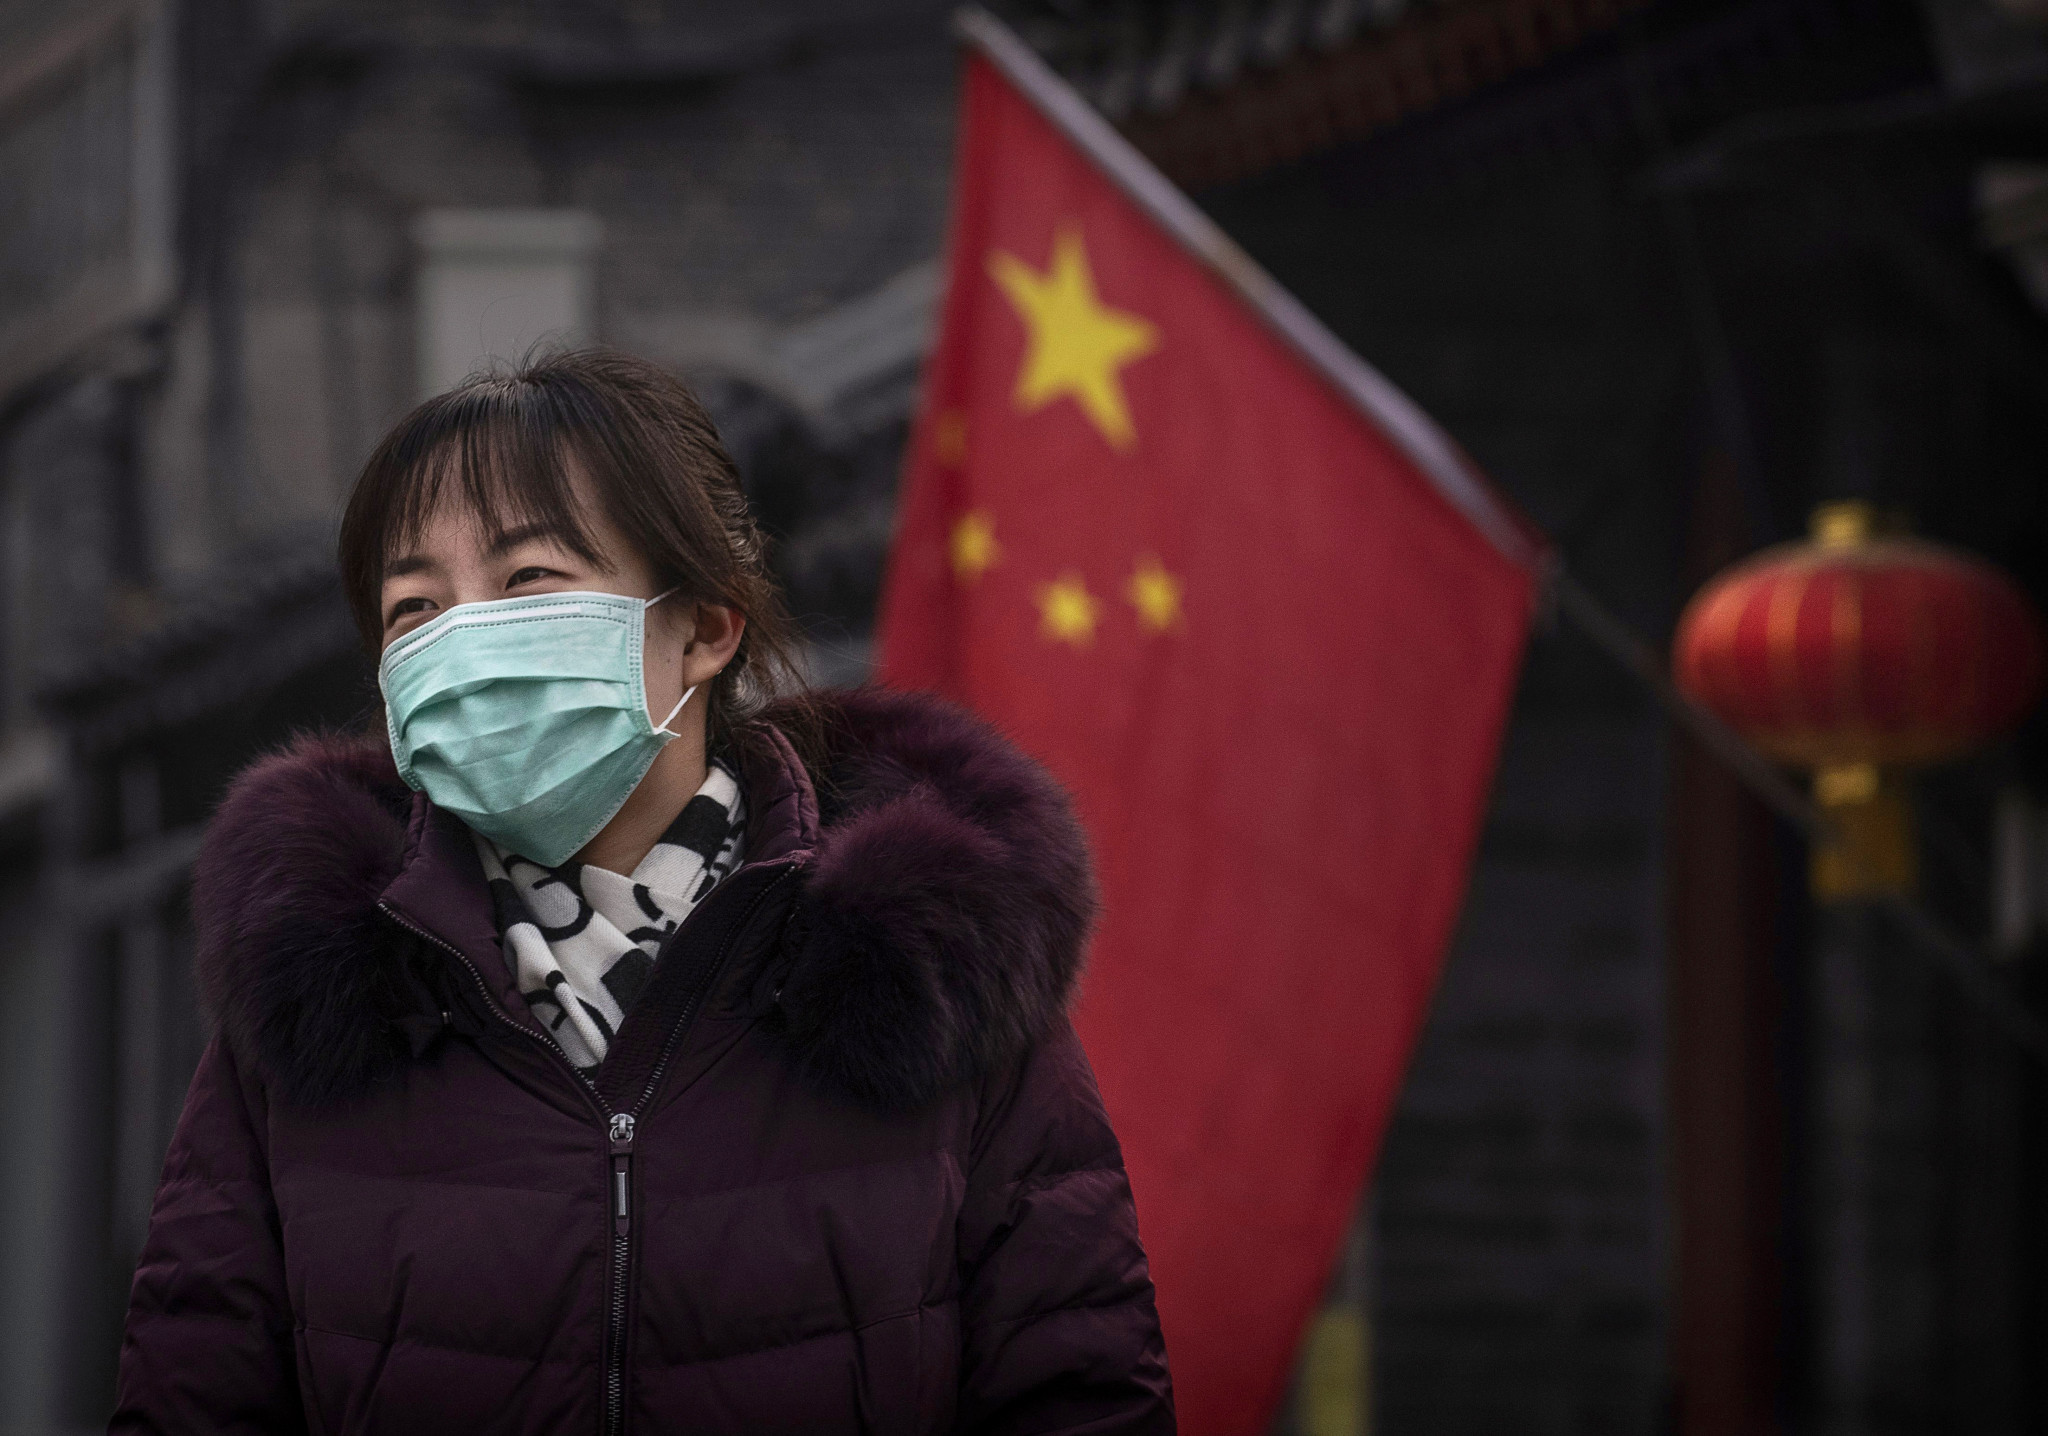 Chinese athletes forced to train in isolation due to coronavirus